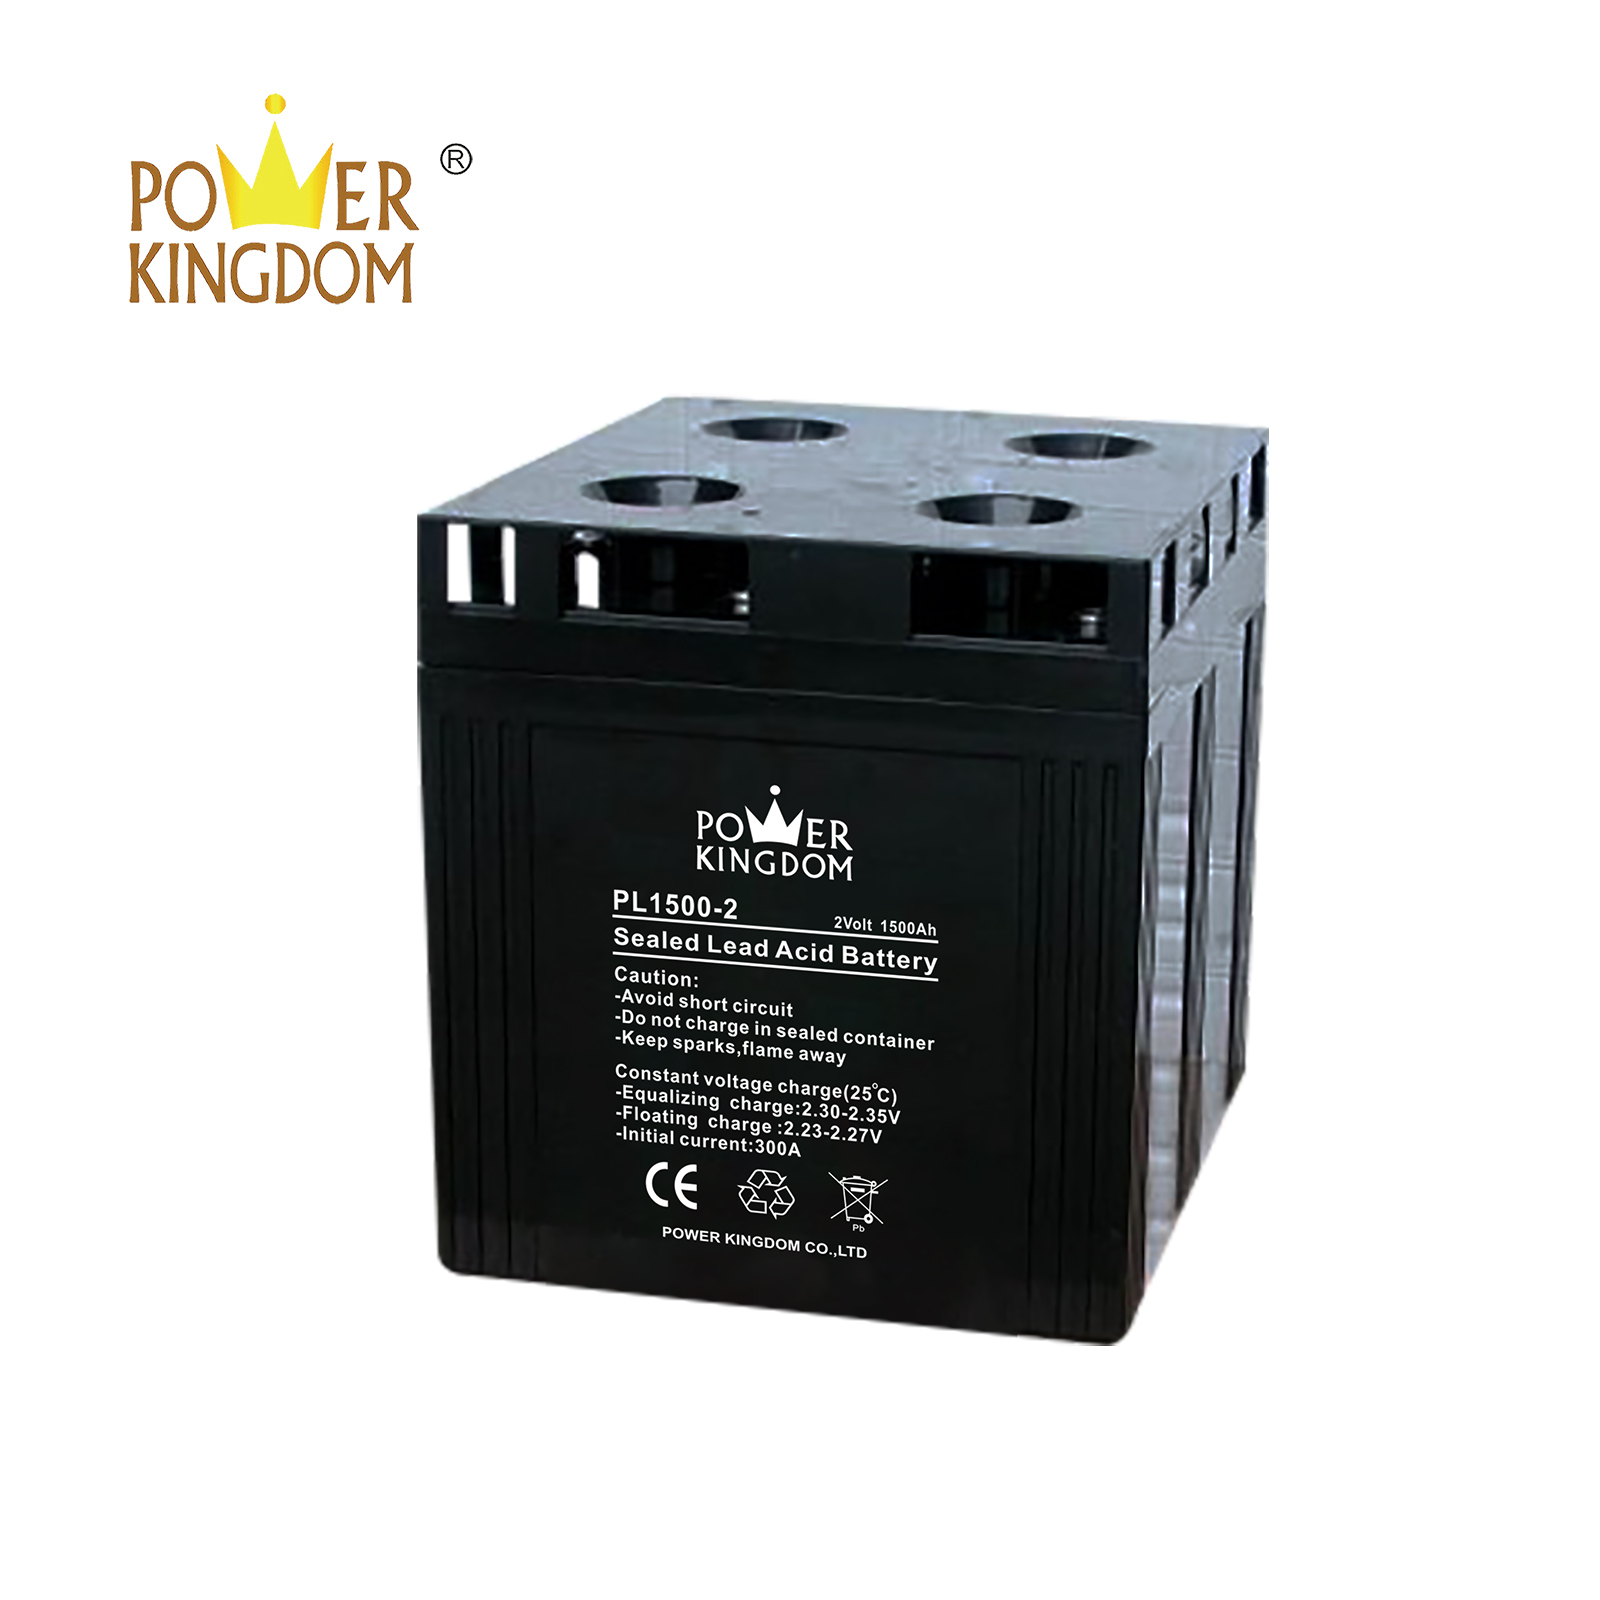 Power Kingdom good quality flooded cell battery Supply fire system-2